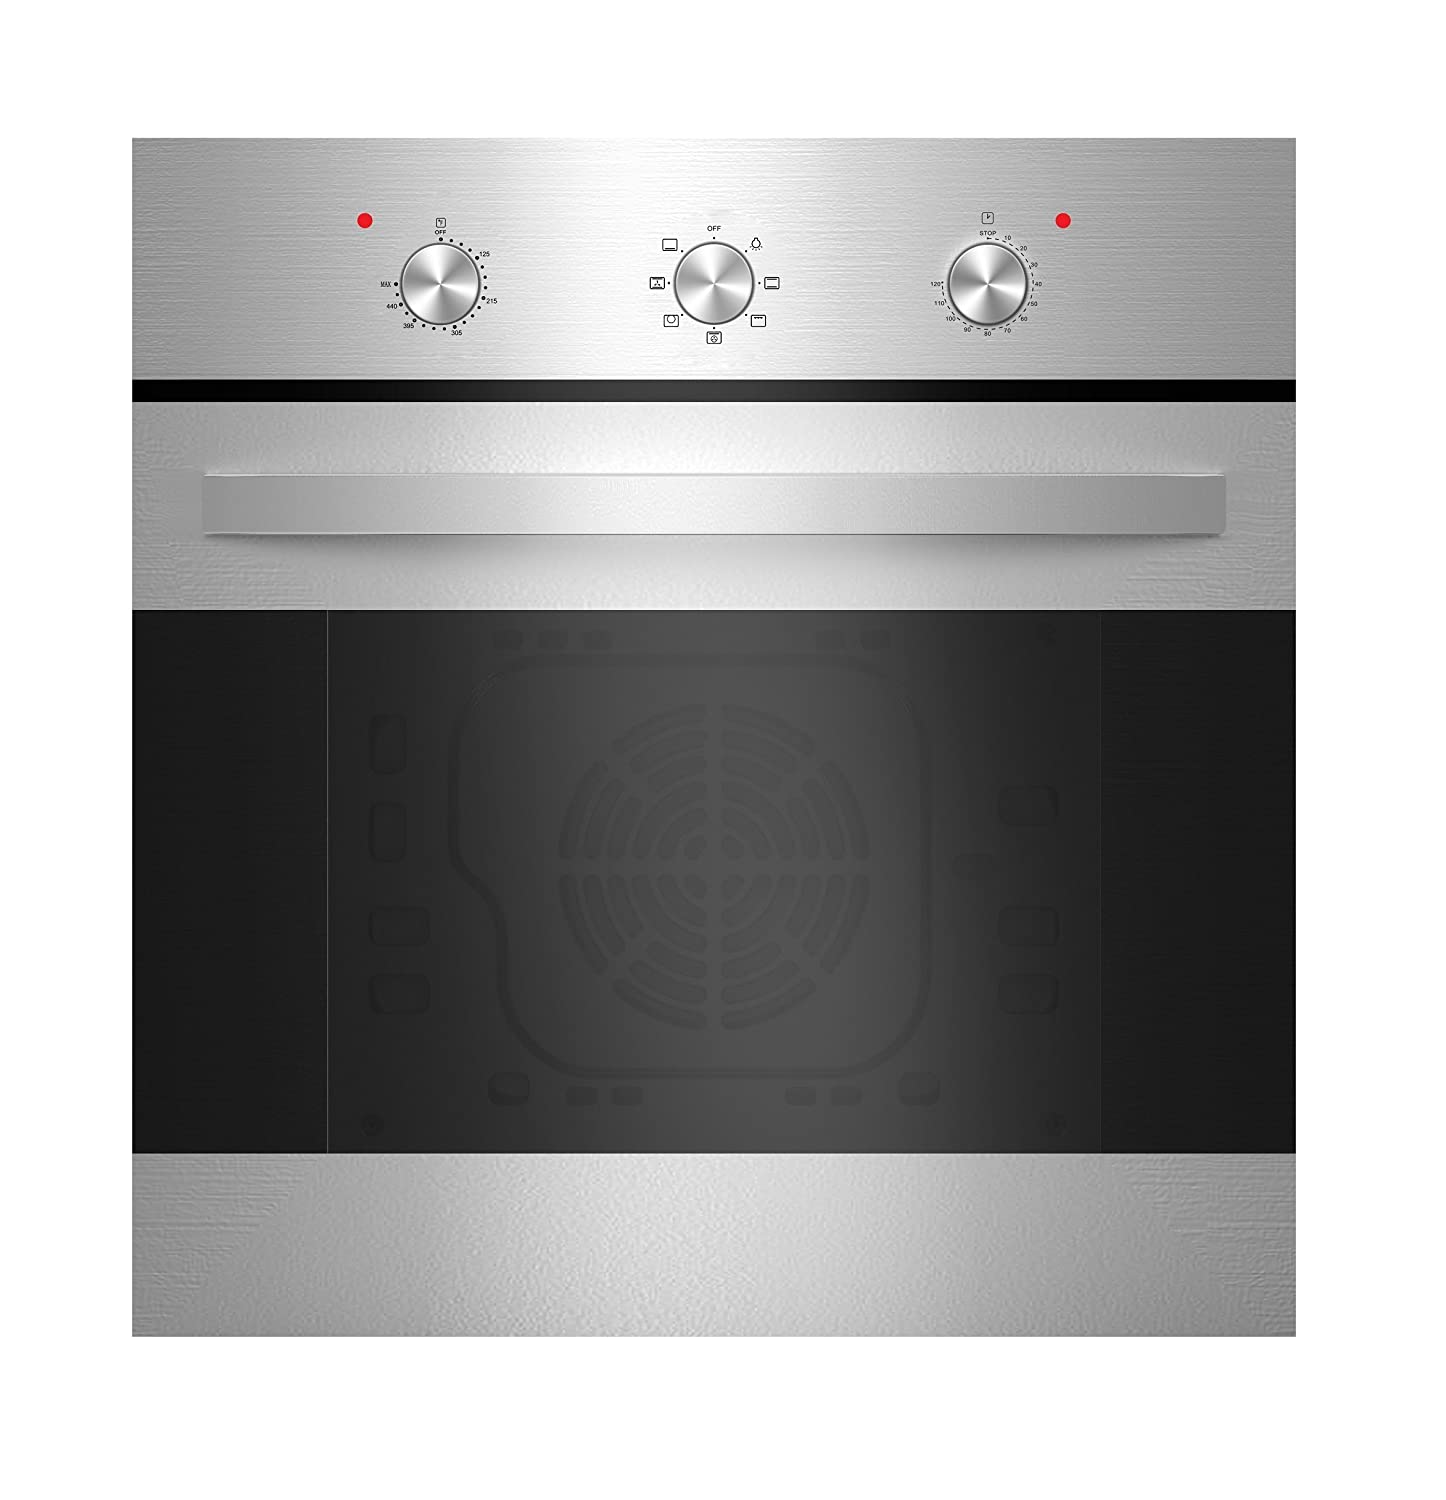 "Empava 24"" Tempered Glass Electric Built-in Single Wall Oven - Stainless Steel KQP65B-14-110V"